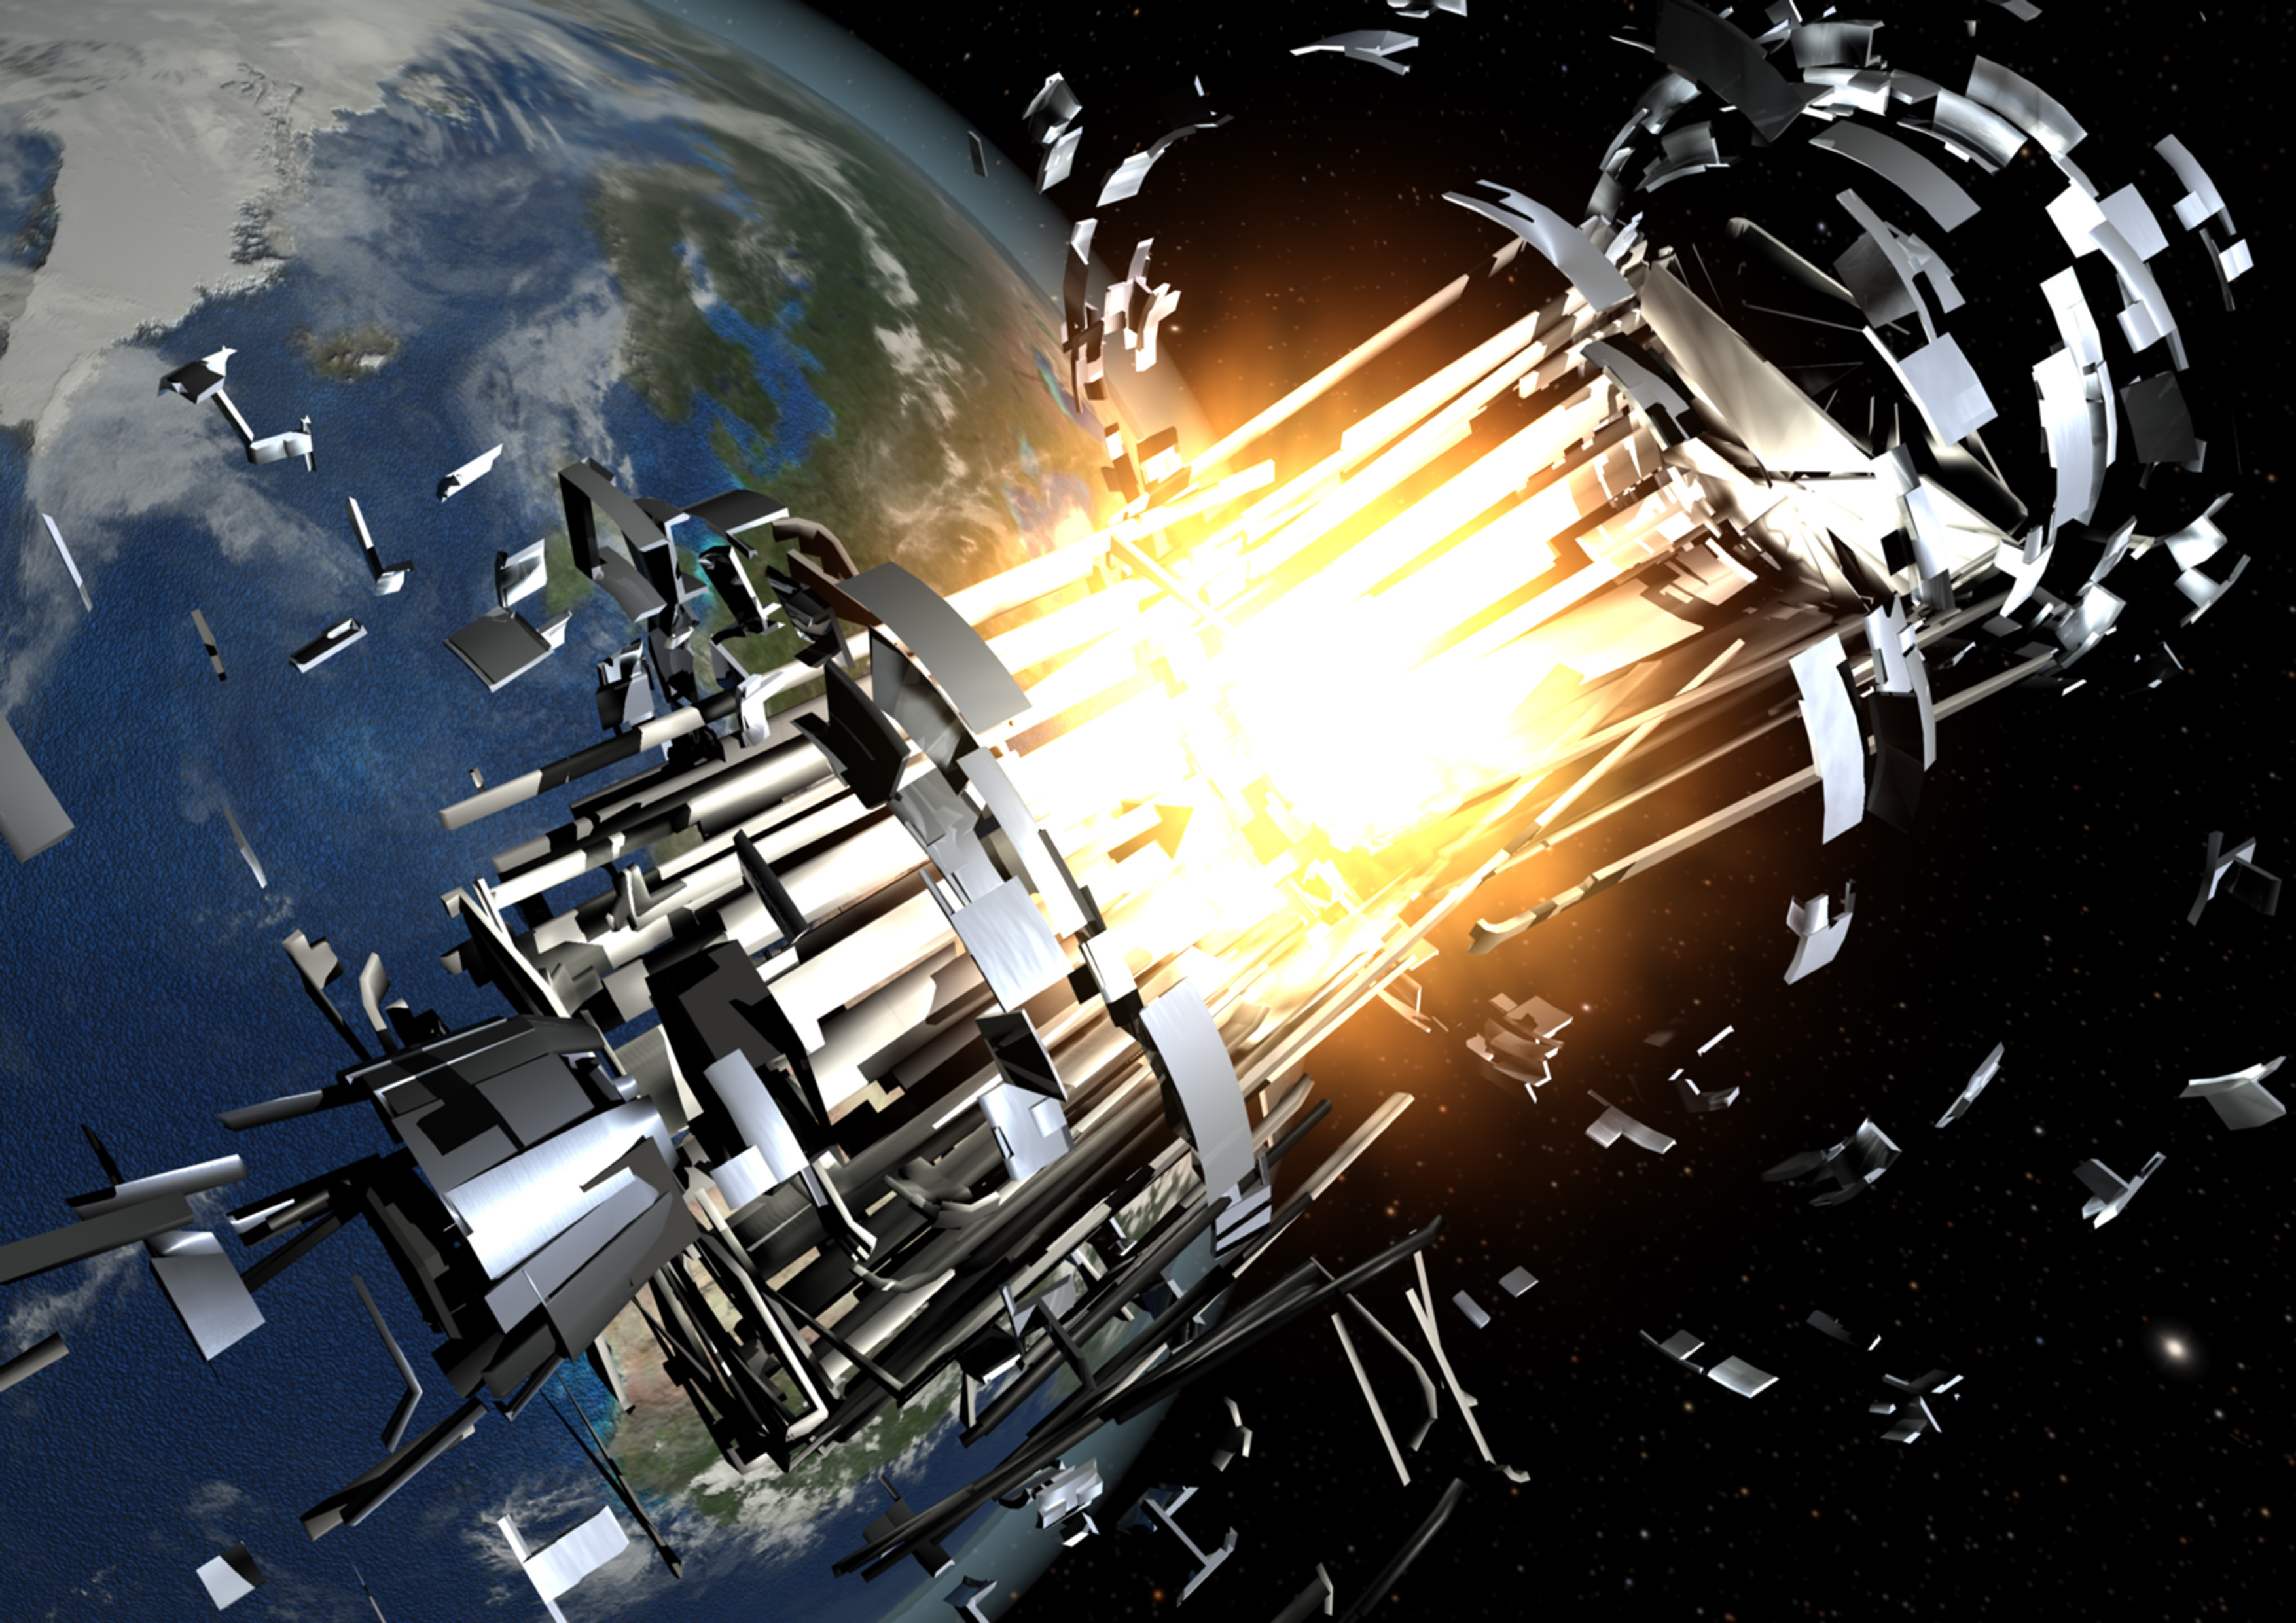 Scientists May Use Explosion-Powered Fans to Destroy Space Debris